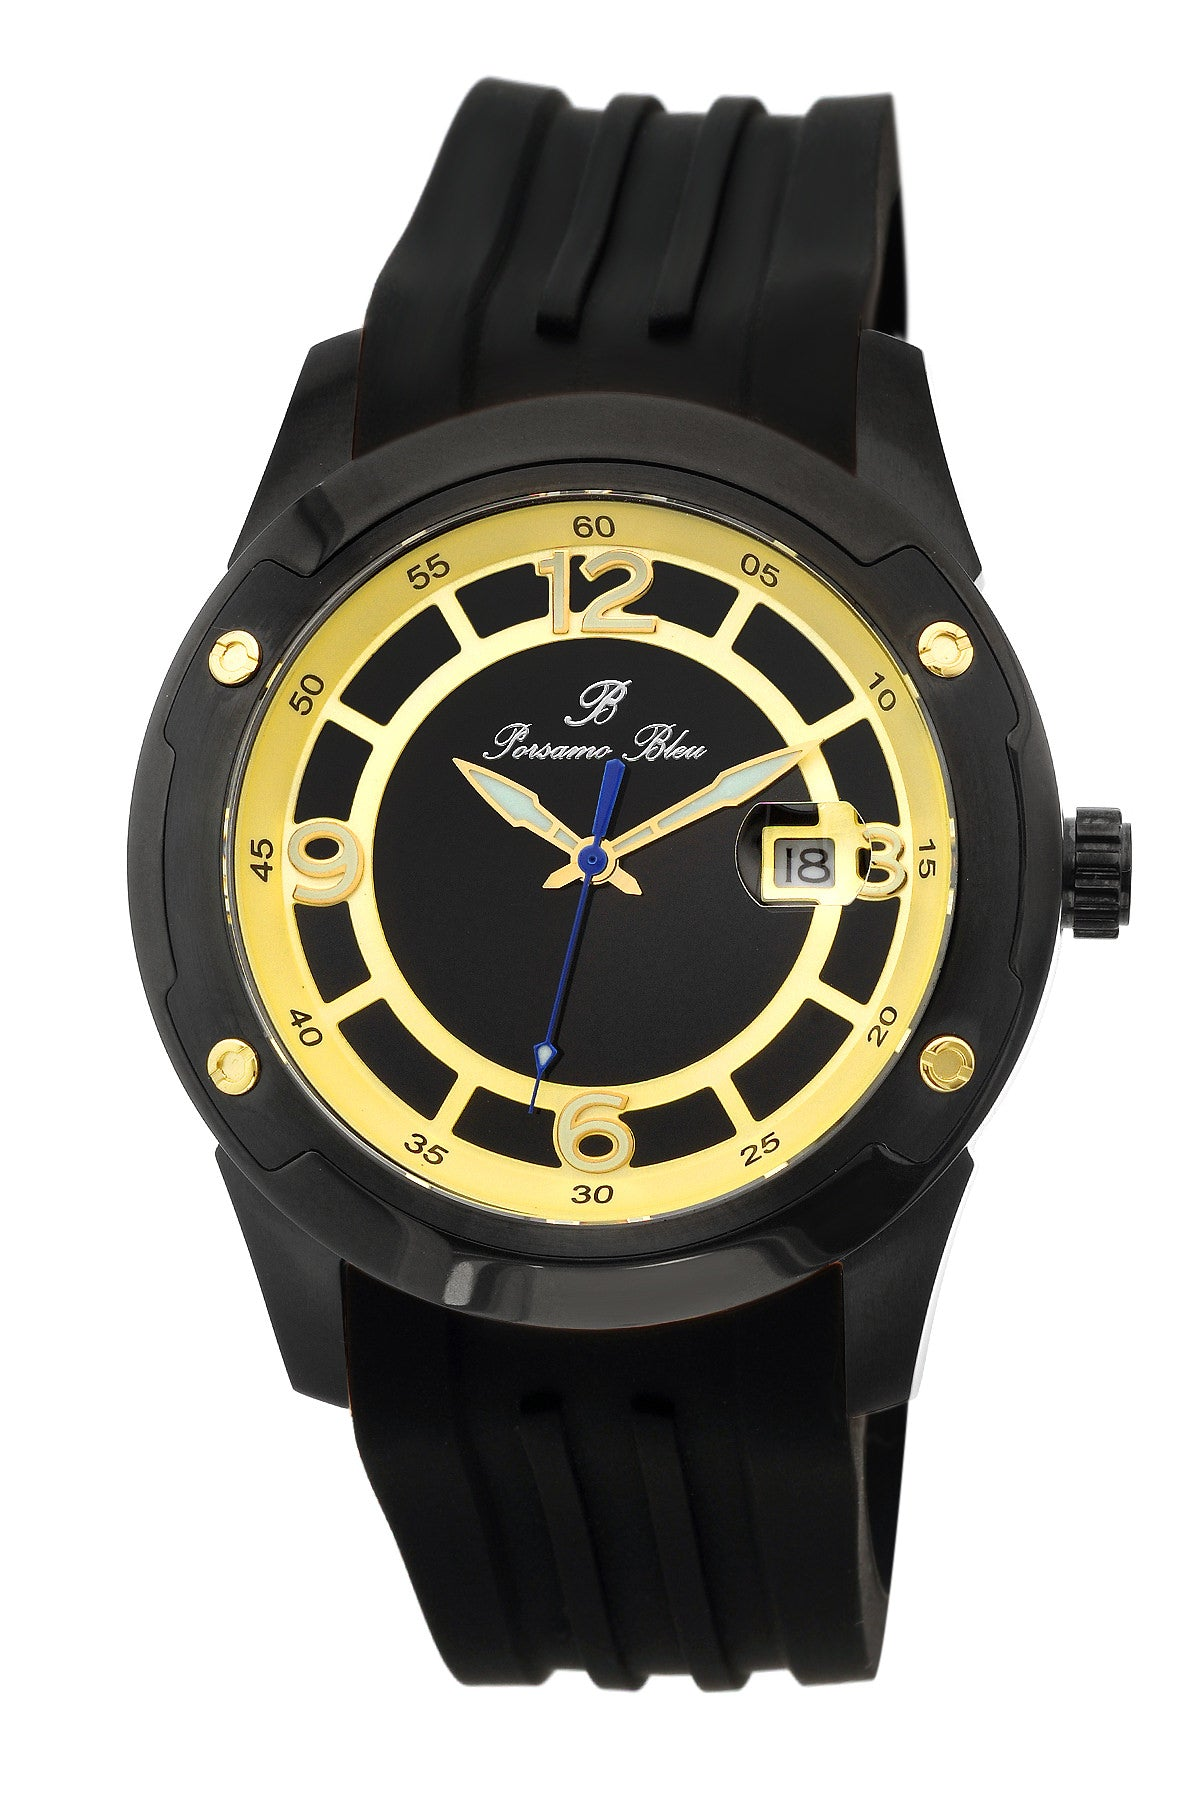 Porsamo Bleu Tokyo luxury Automatic men's watch, silicone strap, gold, black 172BTOR